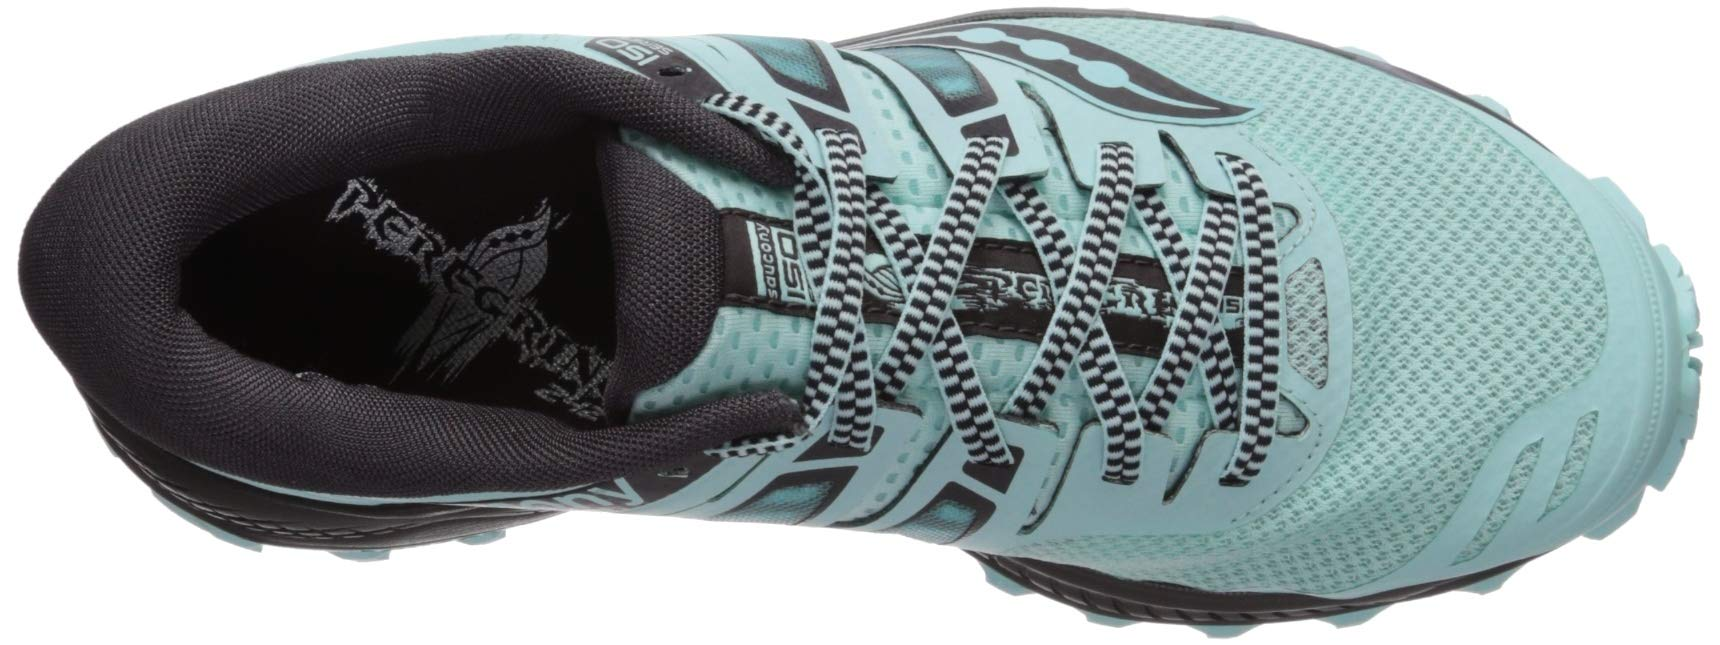 Saucony Women's Peregrine ISO Trail Running Shoe, Aqua/Grey, 5 M US by Saucony (Image #8)